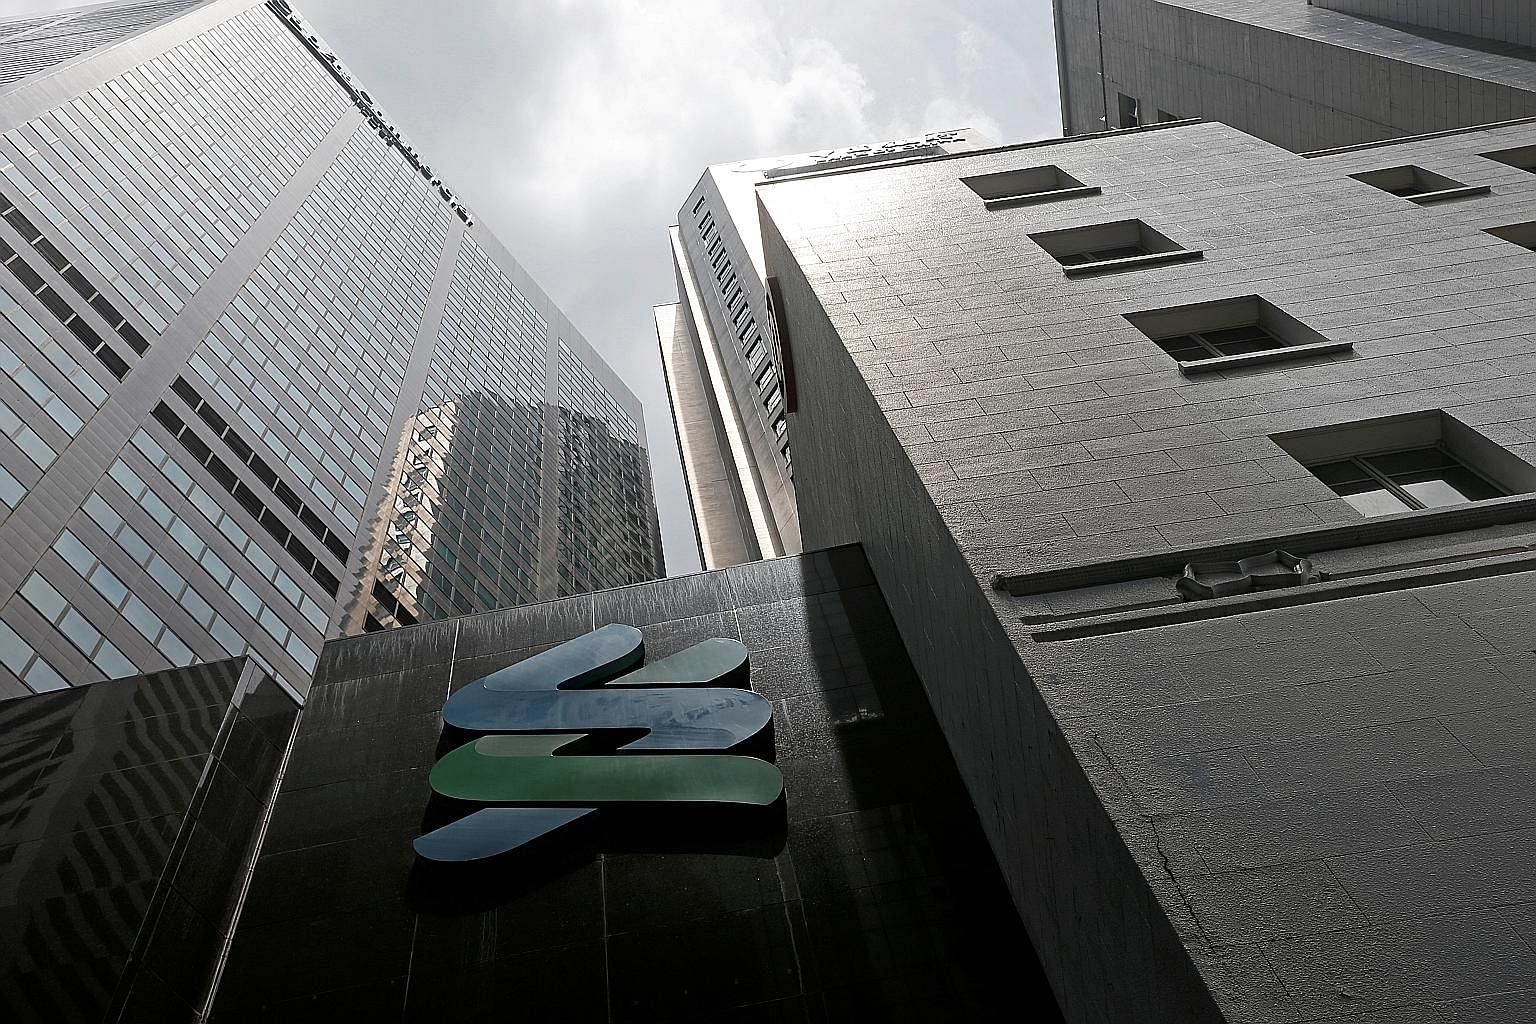 Standard Chartered Bank has a history of serving clients here for over 160 years. Last year, it became the first and only international bank to incorporate all its businesses in Singapore.